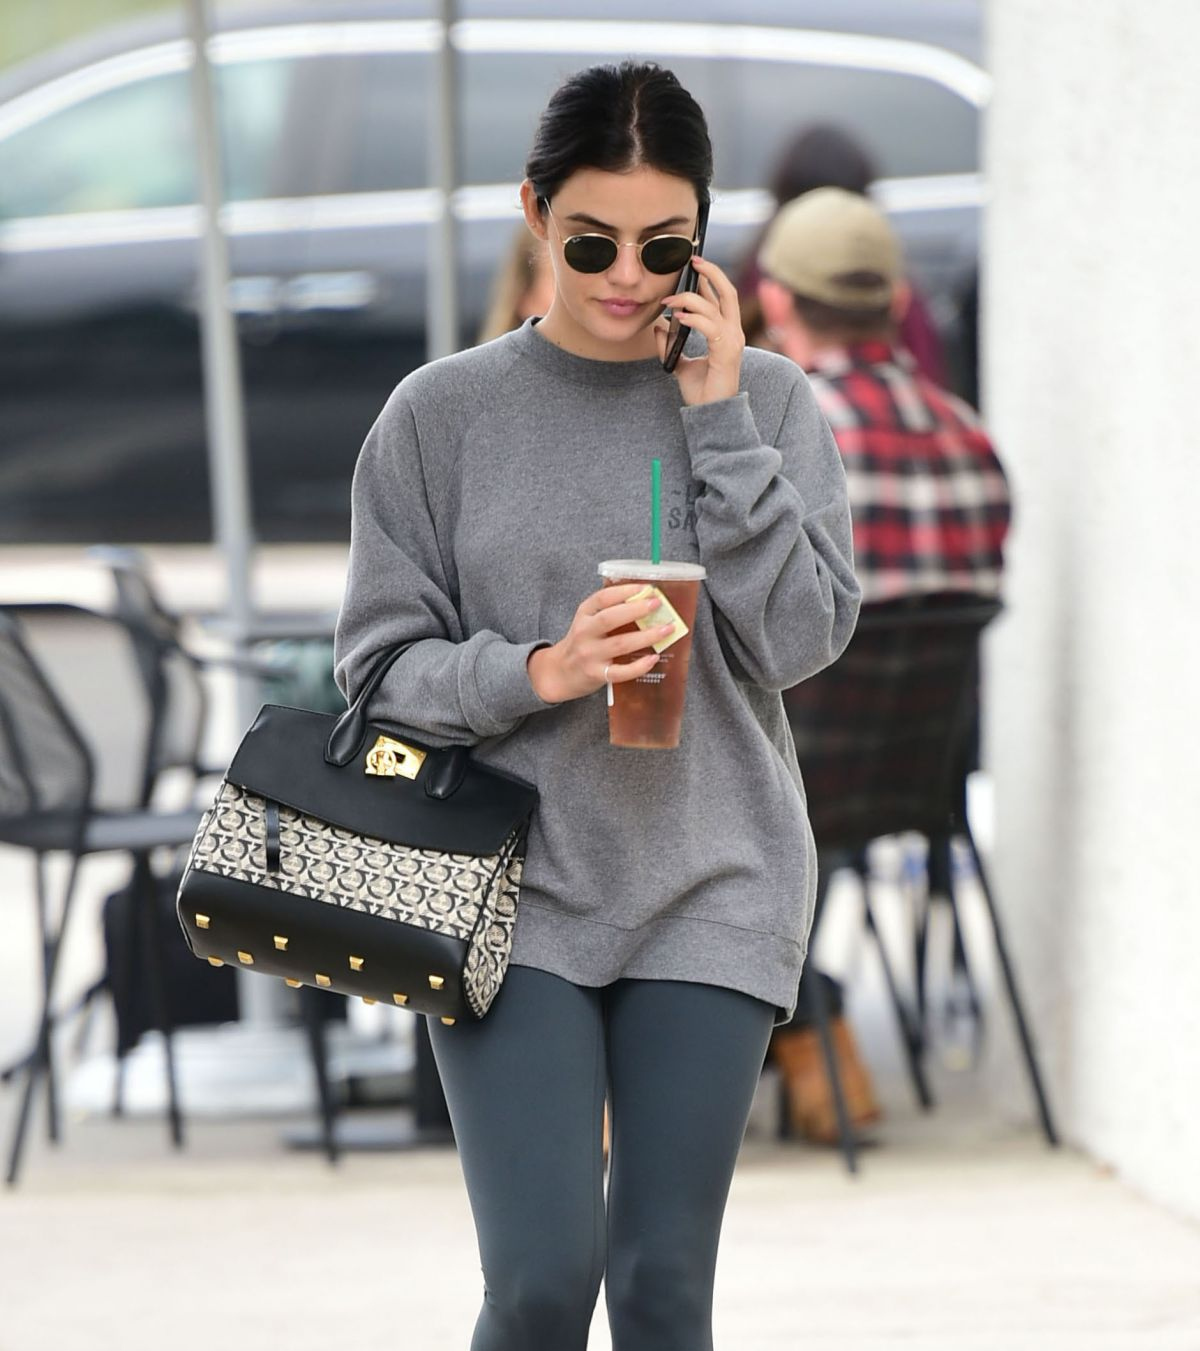 Toluca Lake Apartments: Lucy Hale Making A Stop At A Dentists Office In Toluca